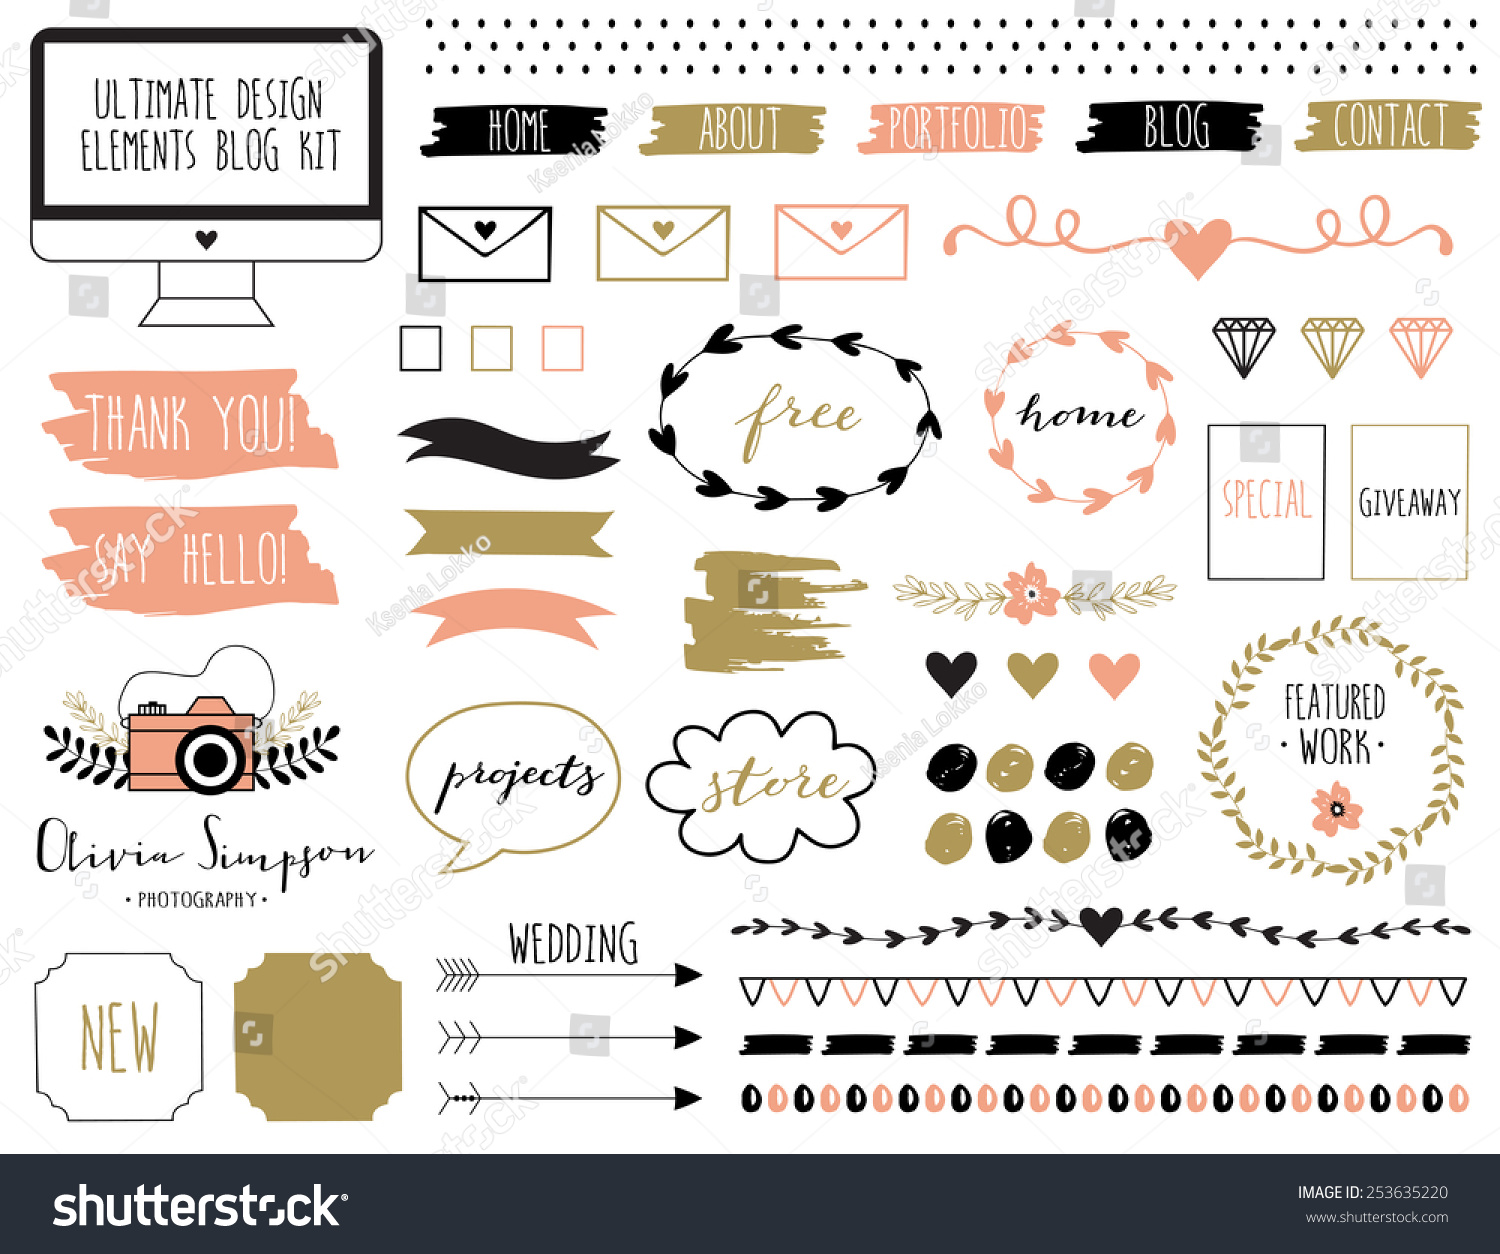 Ultimate Design Elements Blog Kit Your Stock Vector